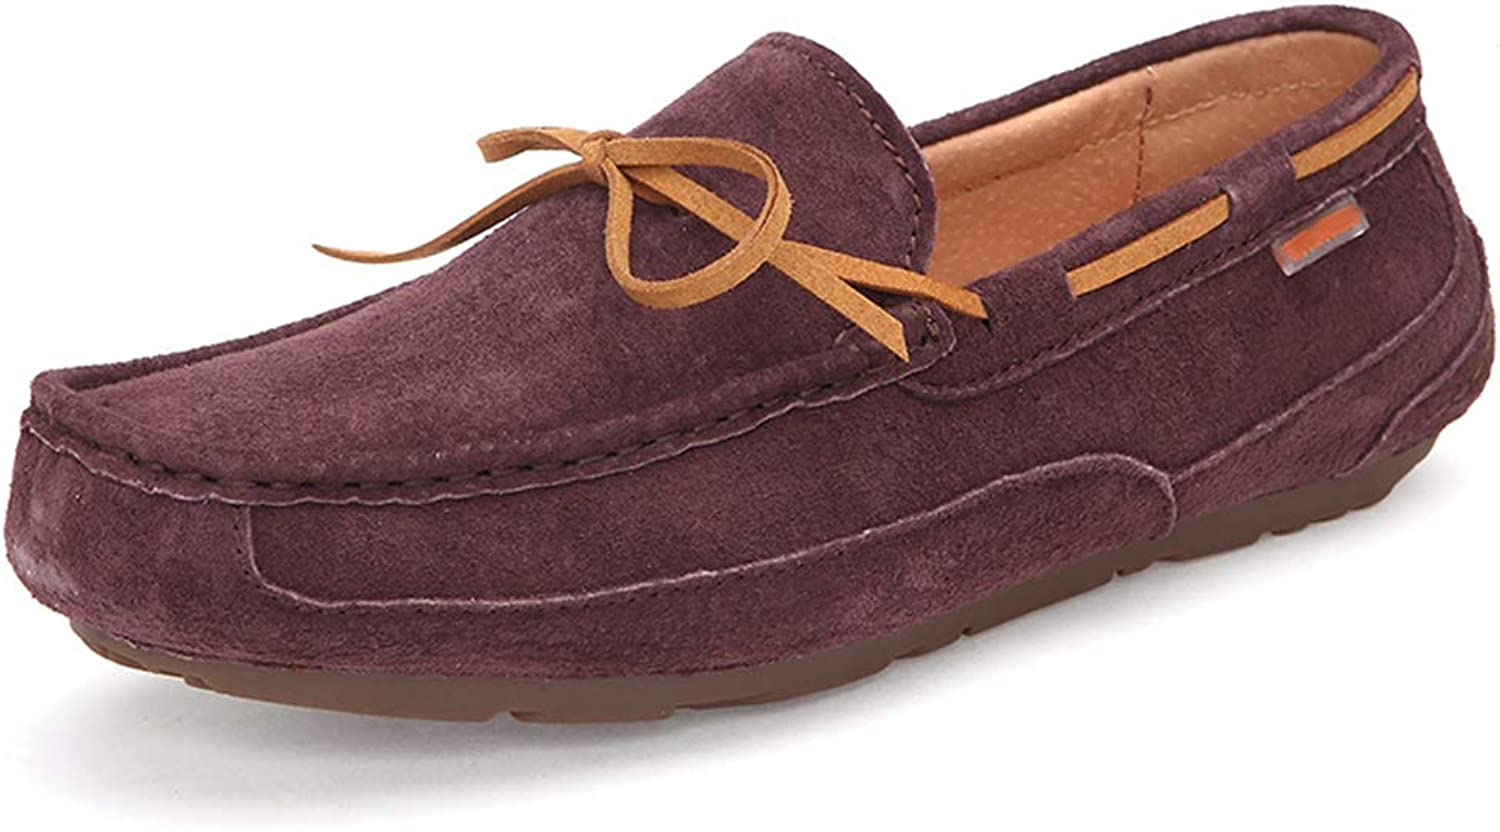 Men's Casual shoes, Comfortable Driving shoes Loafers & Slip-Ons Lazy shoes for Work, Leisure,Sports,Going Out,Gatherings,B,39